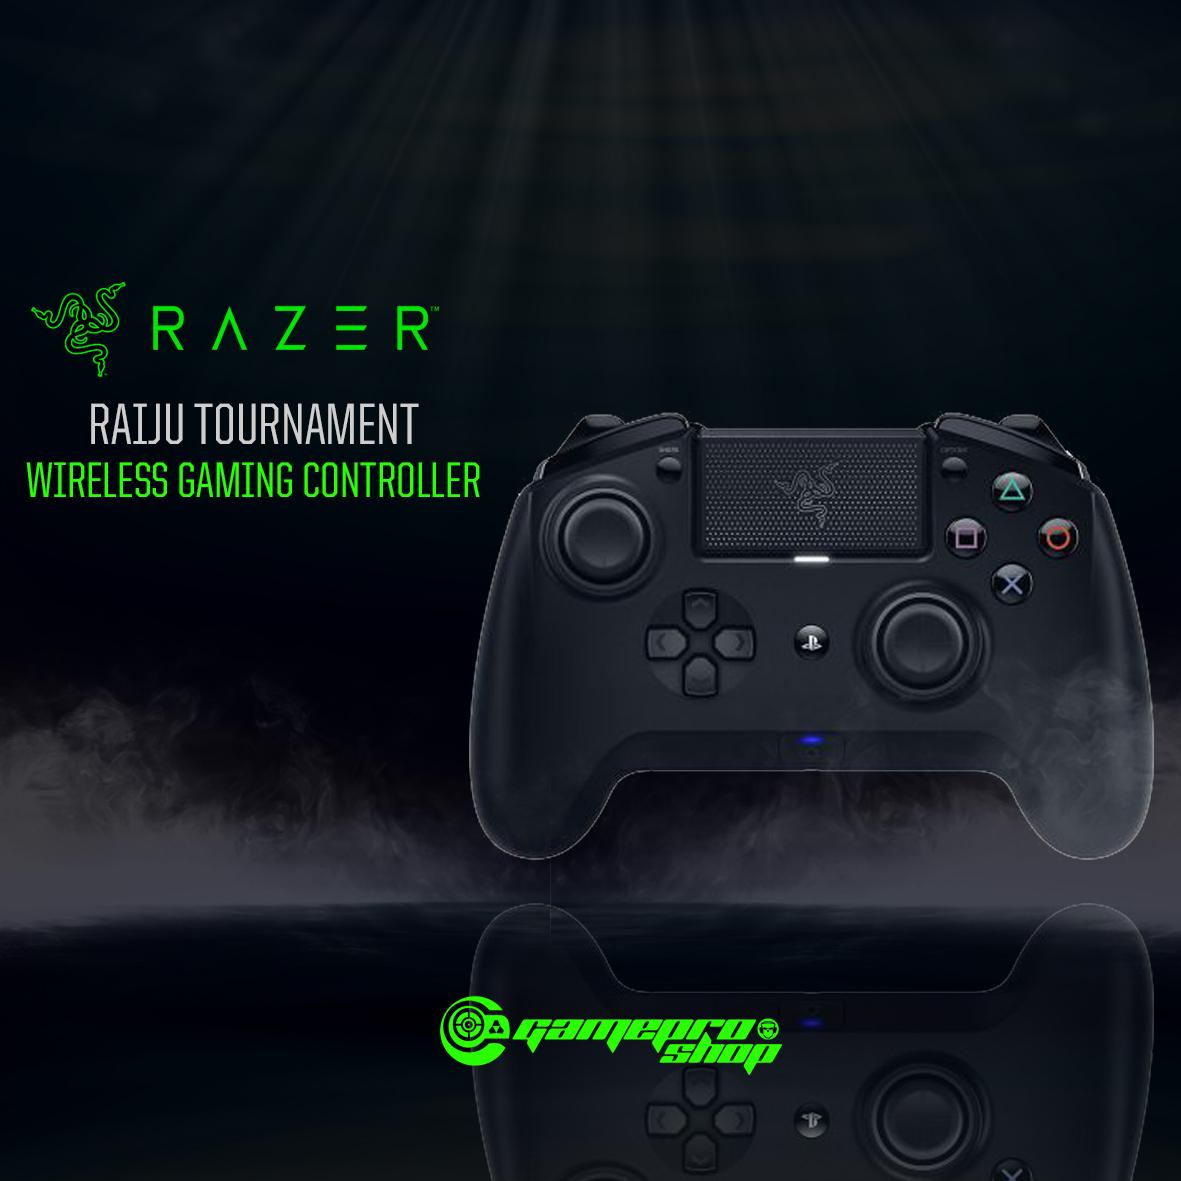 Razer Raiju Tournament Edition Wireless Gaming Controller *gss Promo* By Gameprosg (capitaland Merchant).